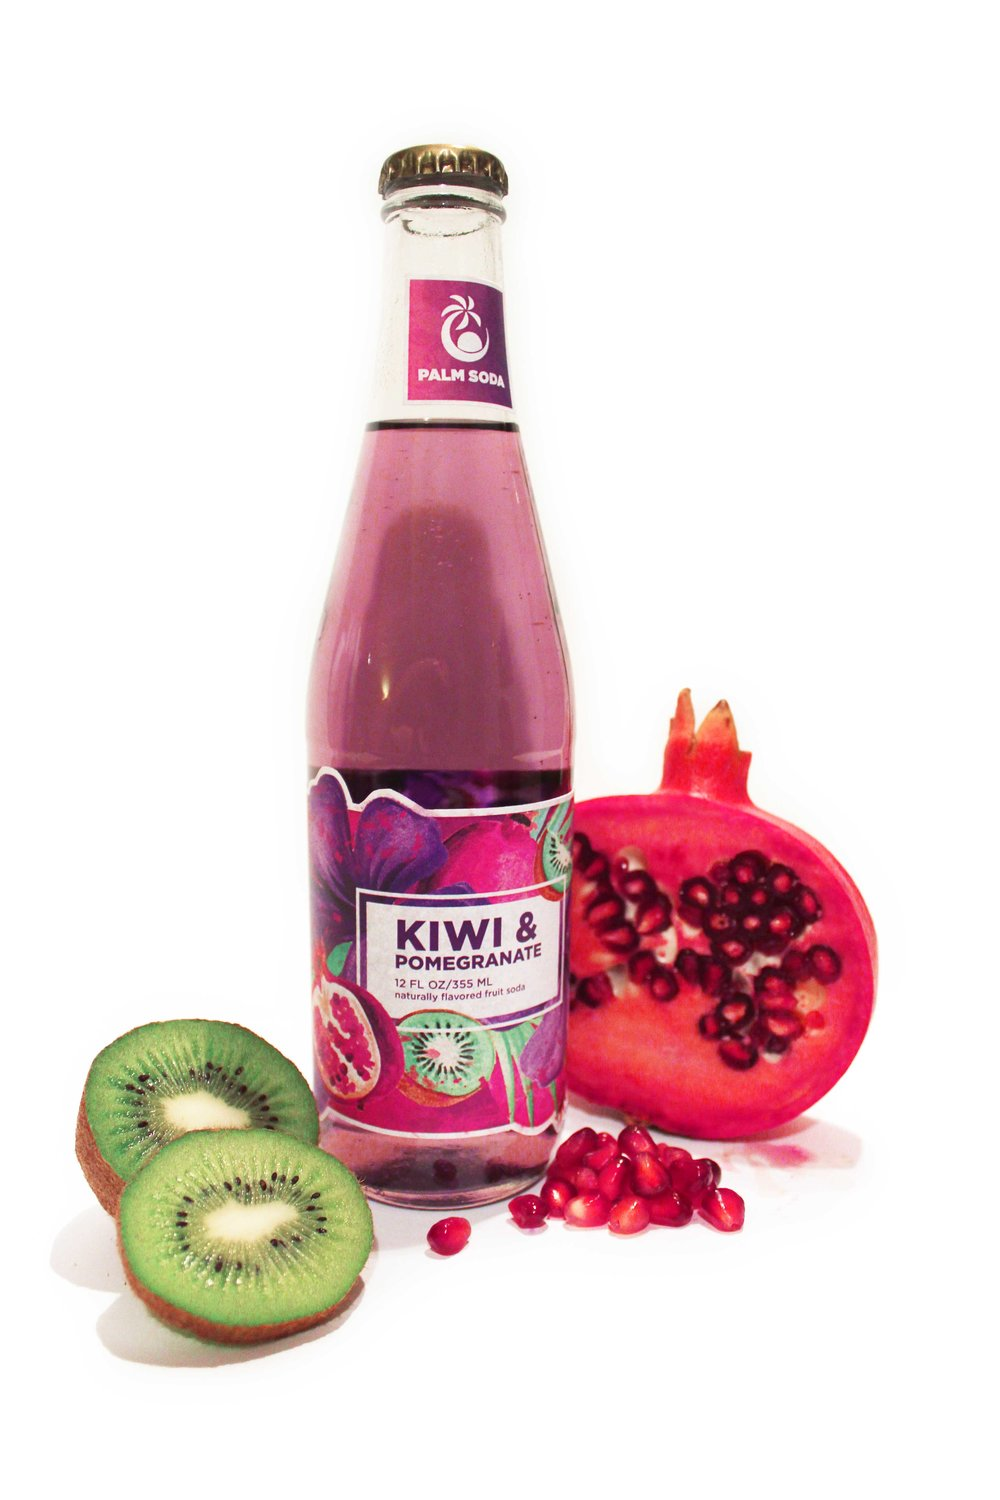 Kiwi Pomegranate Palm Soda